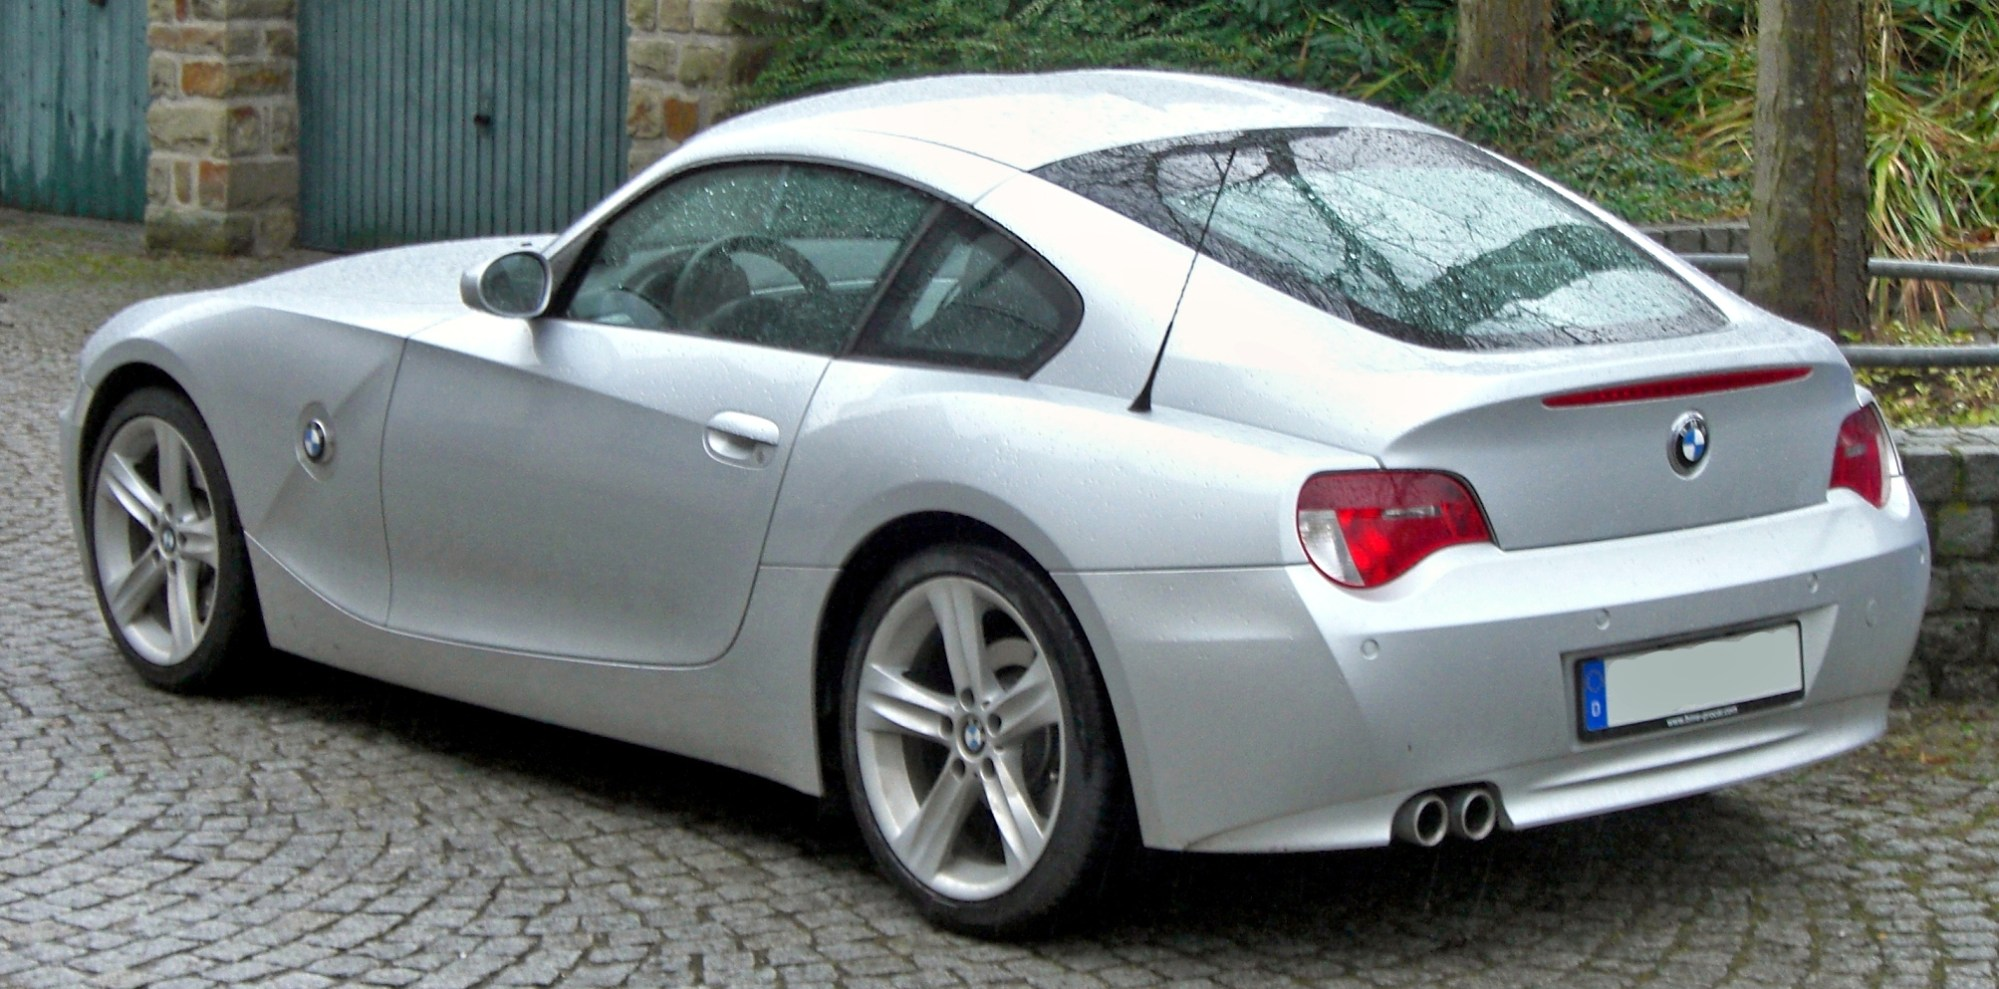 hight resolution of z4 coup rear